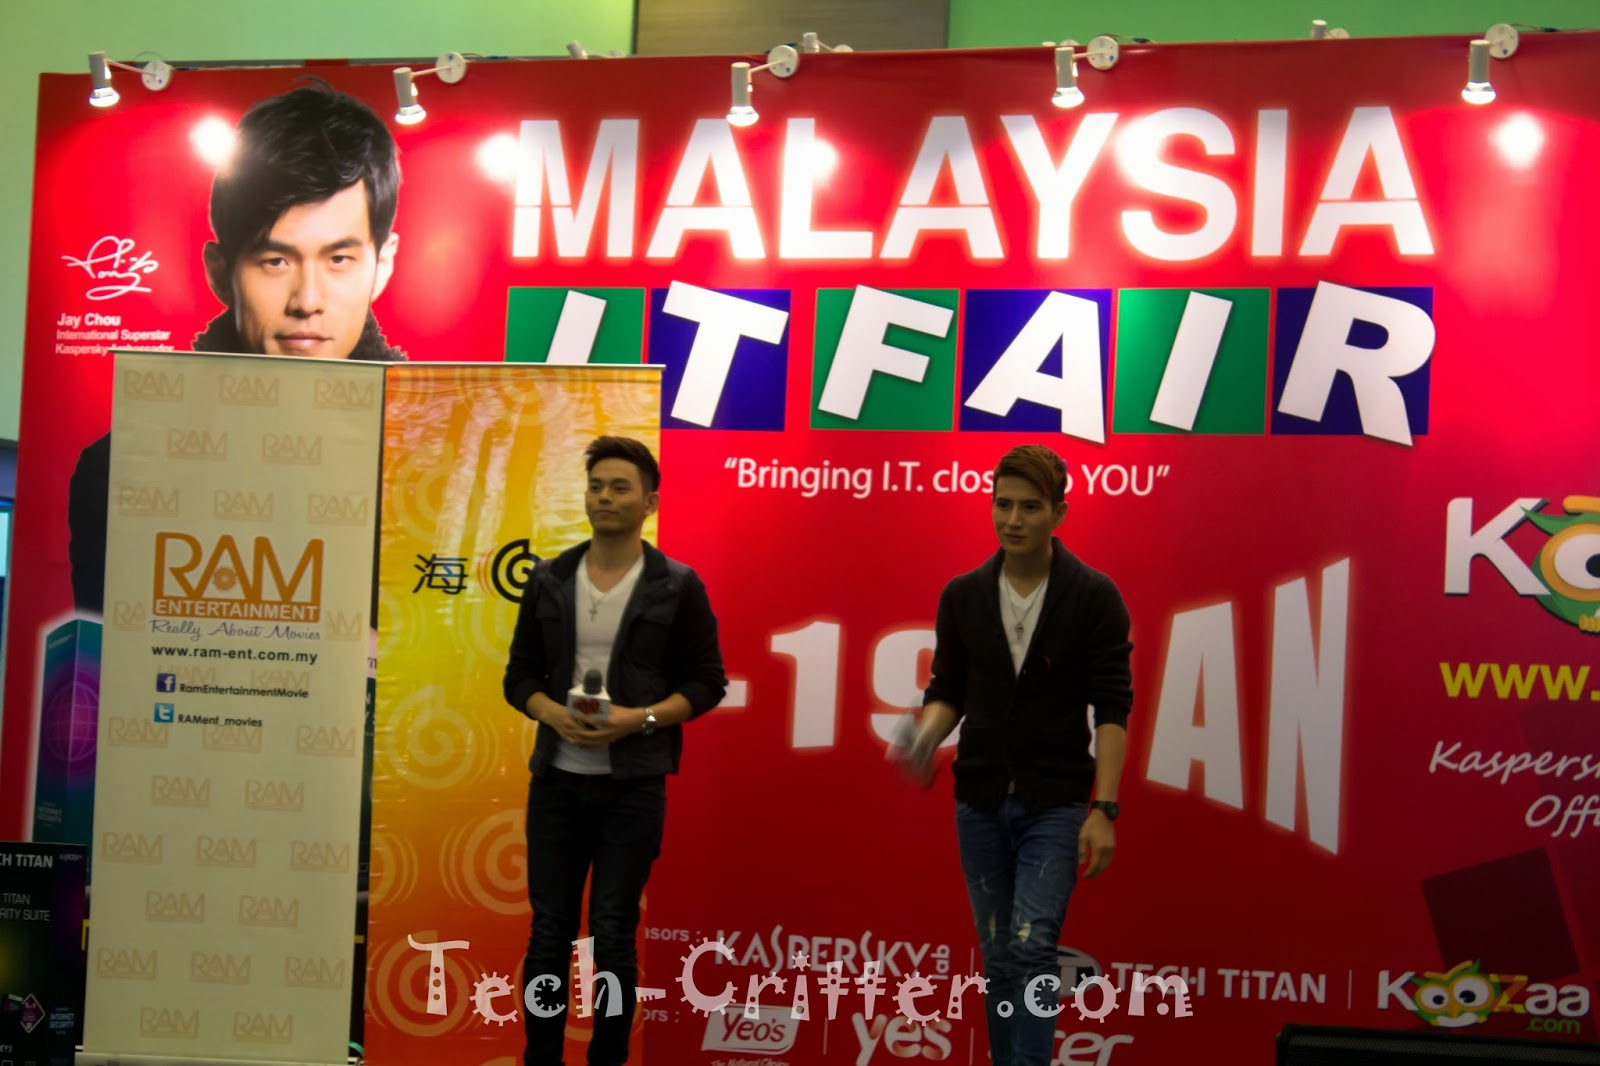 Coverage of the Malaysia IT Fair @ Mid Valley (17 - 19 Jan 2014) 232